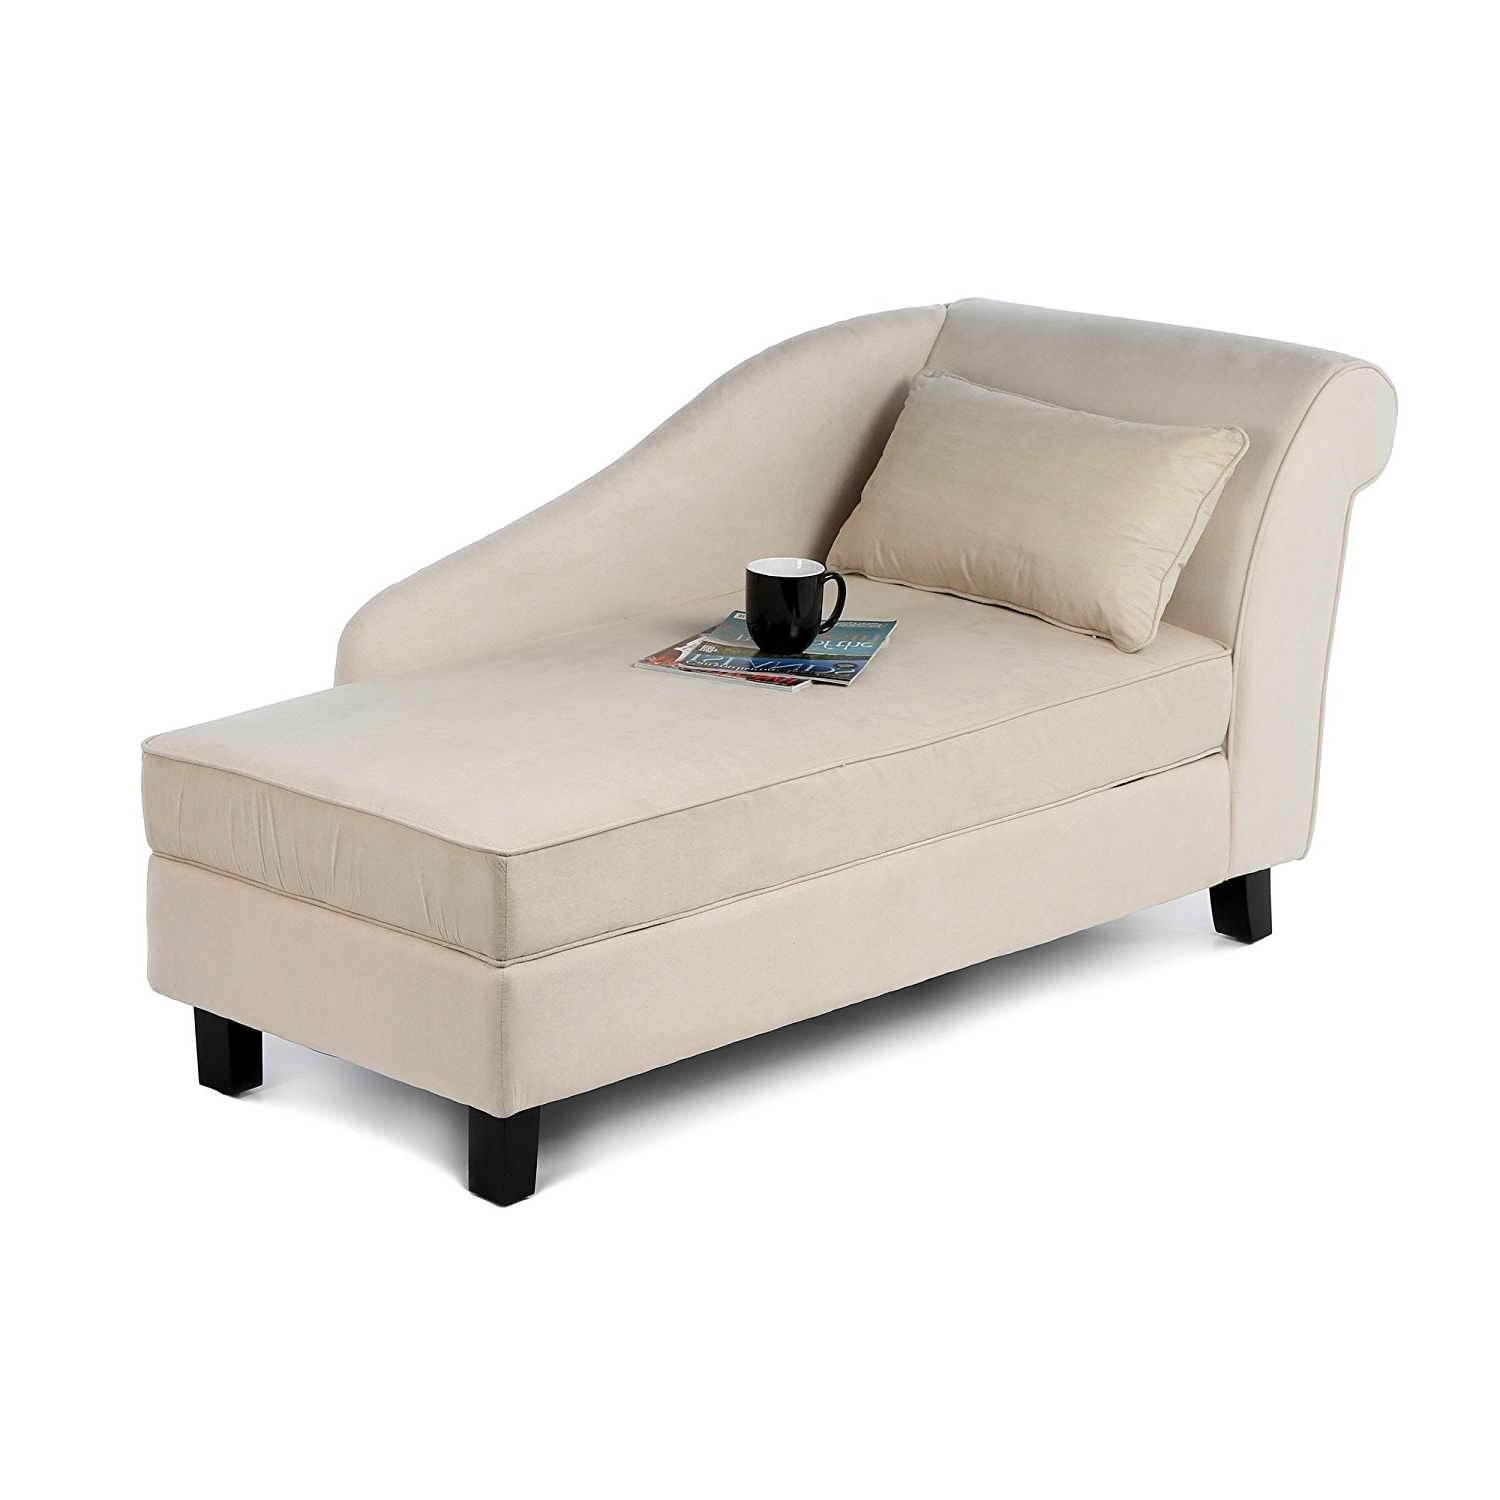 Famous Storage Chaise Lounges In Amazon: Castleton Home Storage Chaise Lounge Modern Long Chair (View 3 of 15)